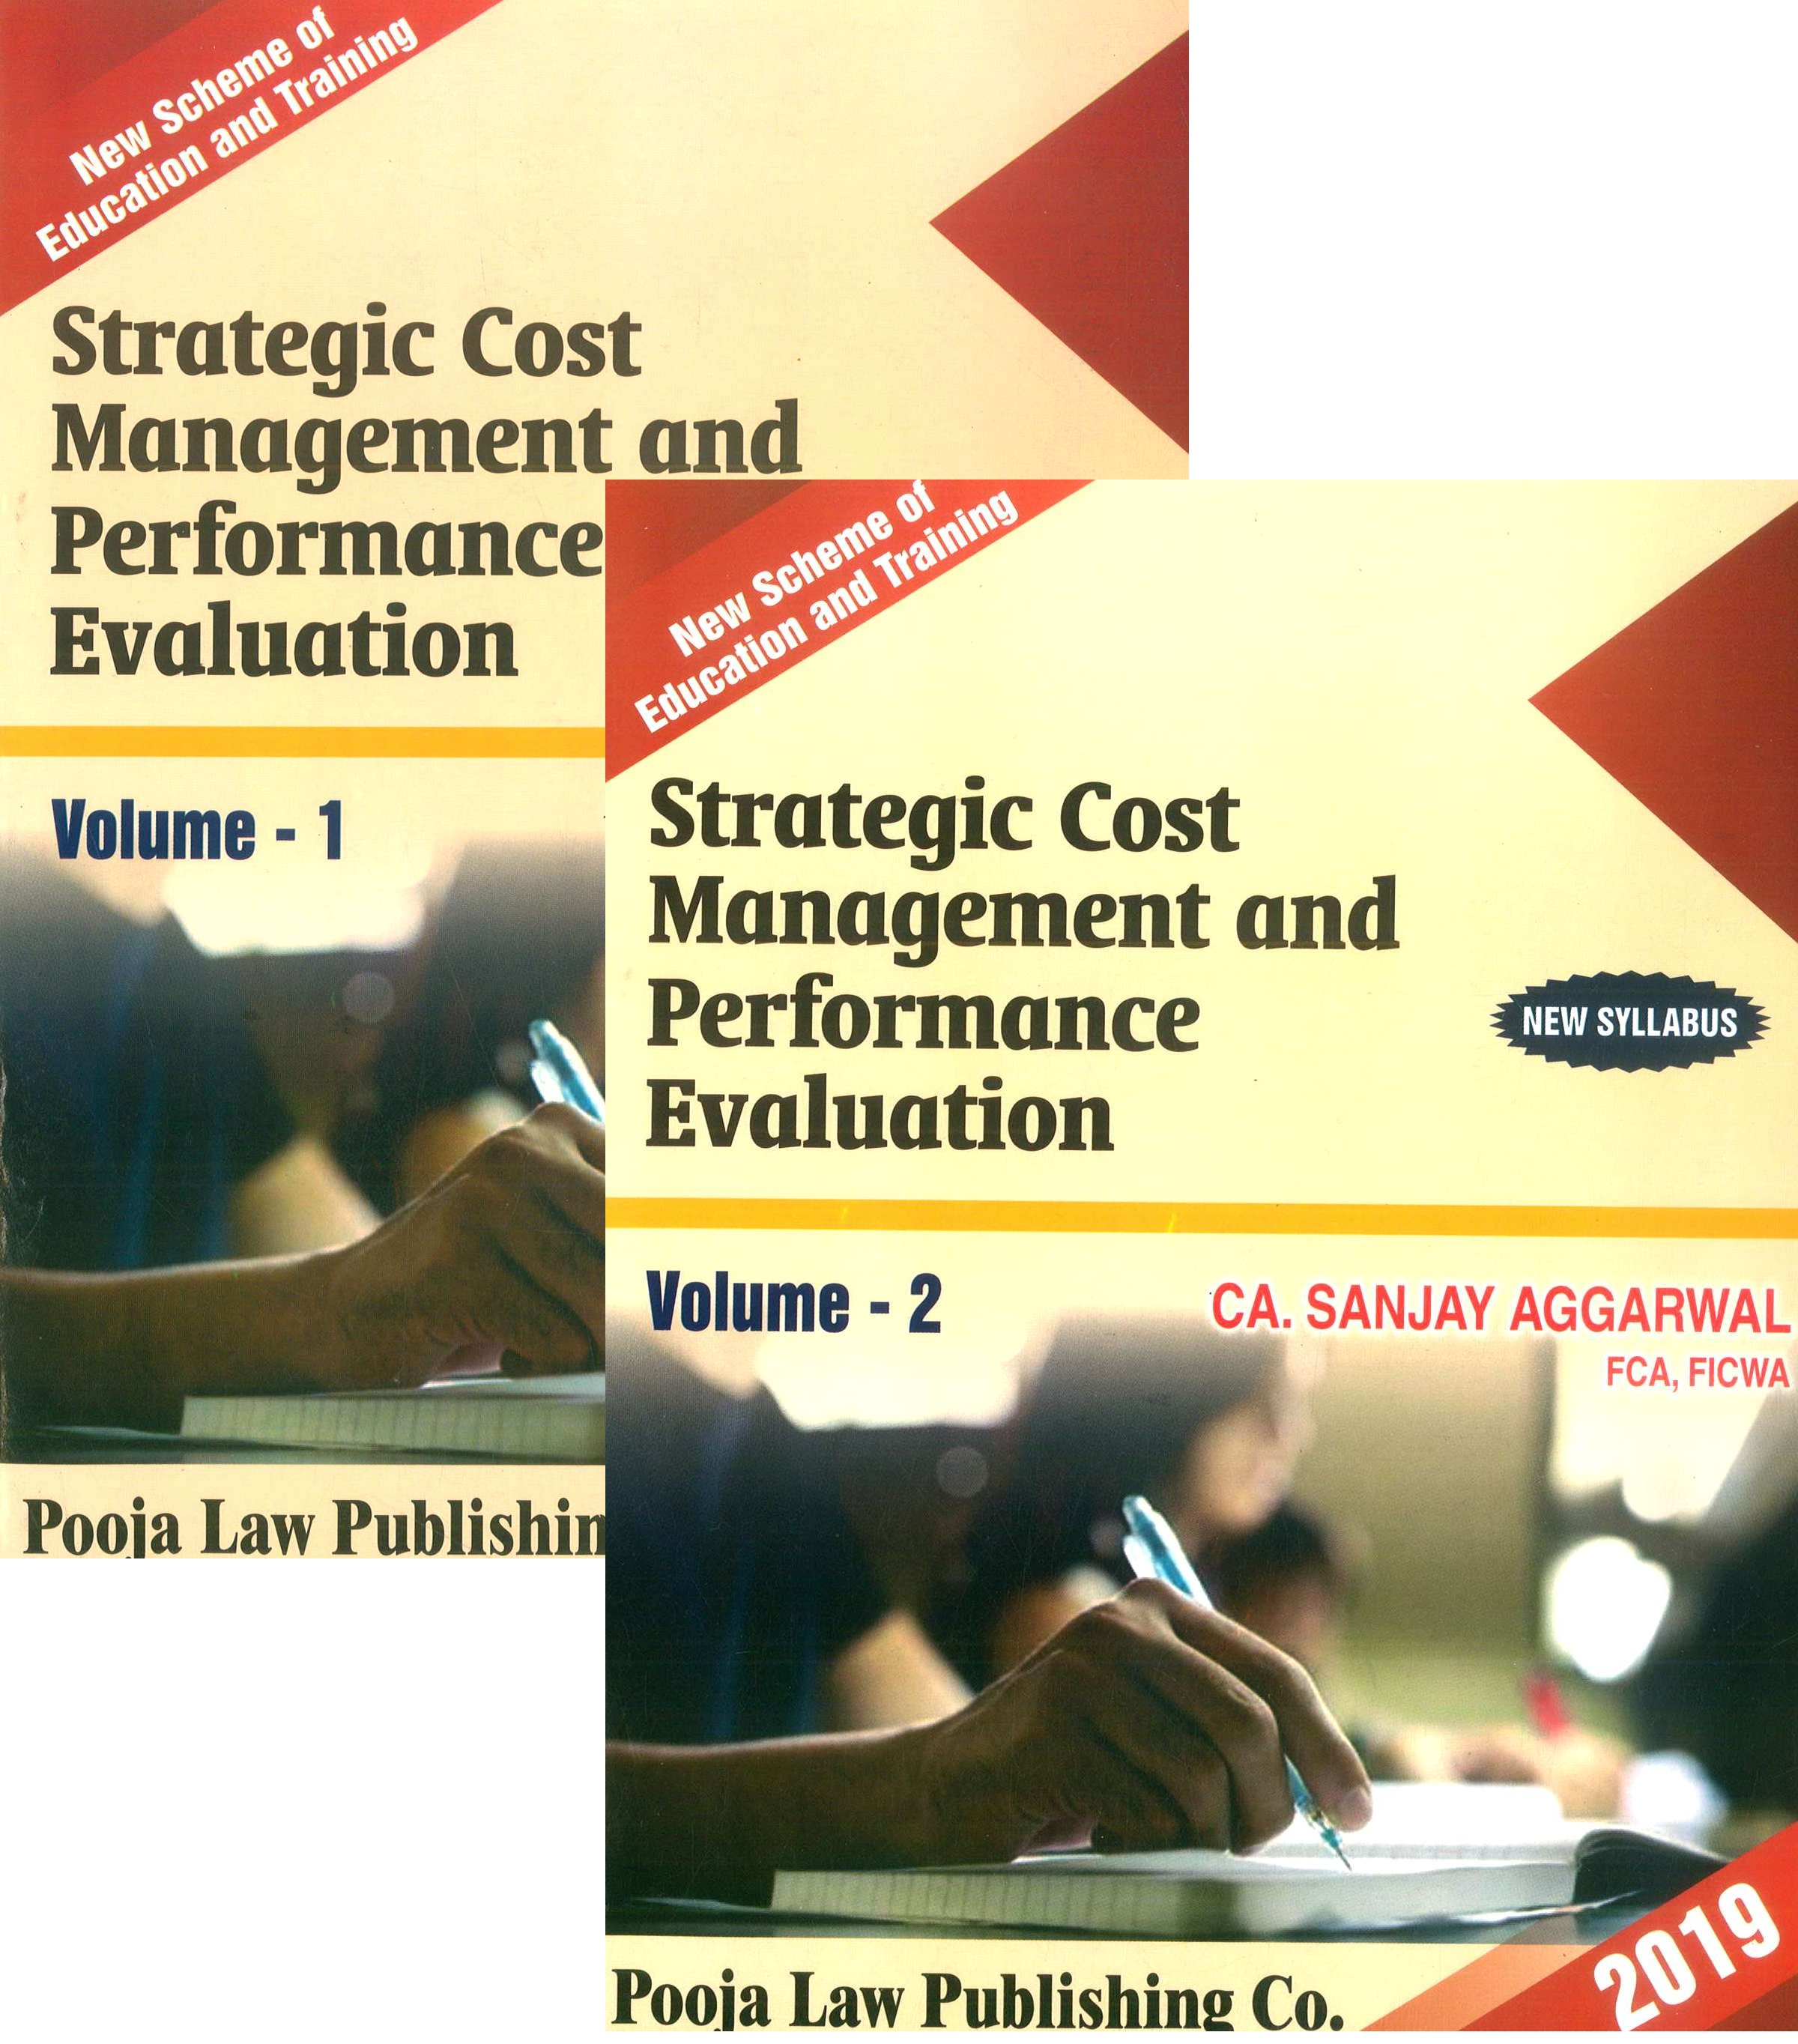 Pooja Law House CA Final Strategic Cost Management and Performance Evaluation for New Syllabus By CA Sanjay Aggarwal Applicable for May 2019 Exam